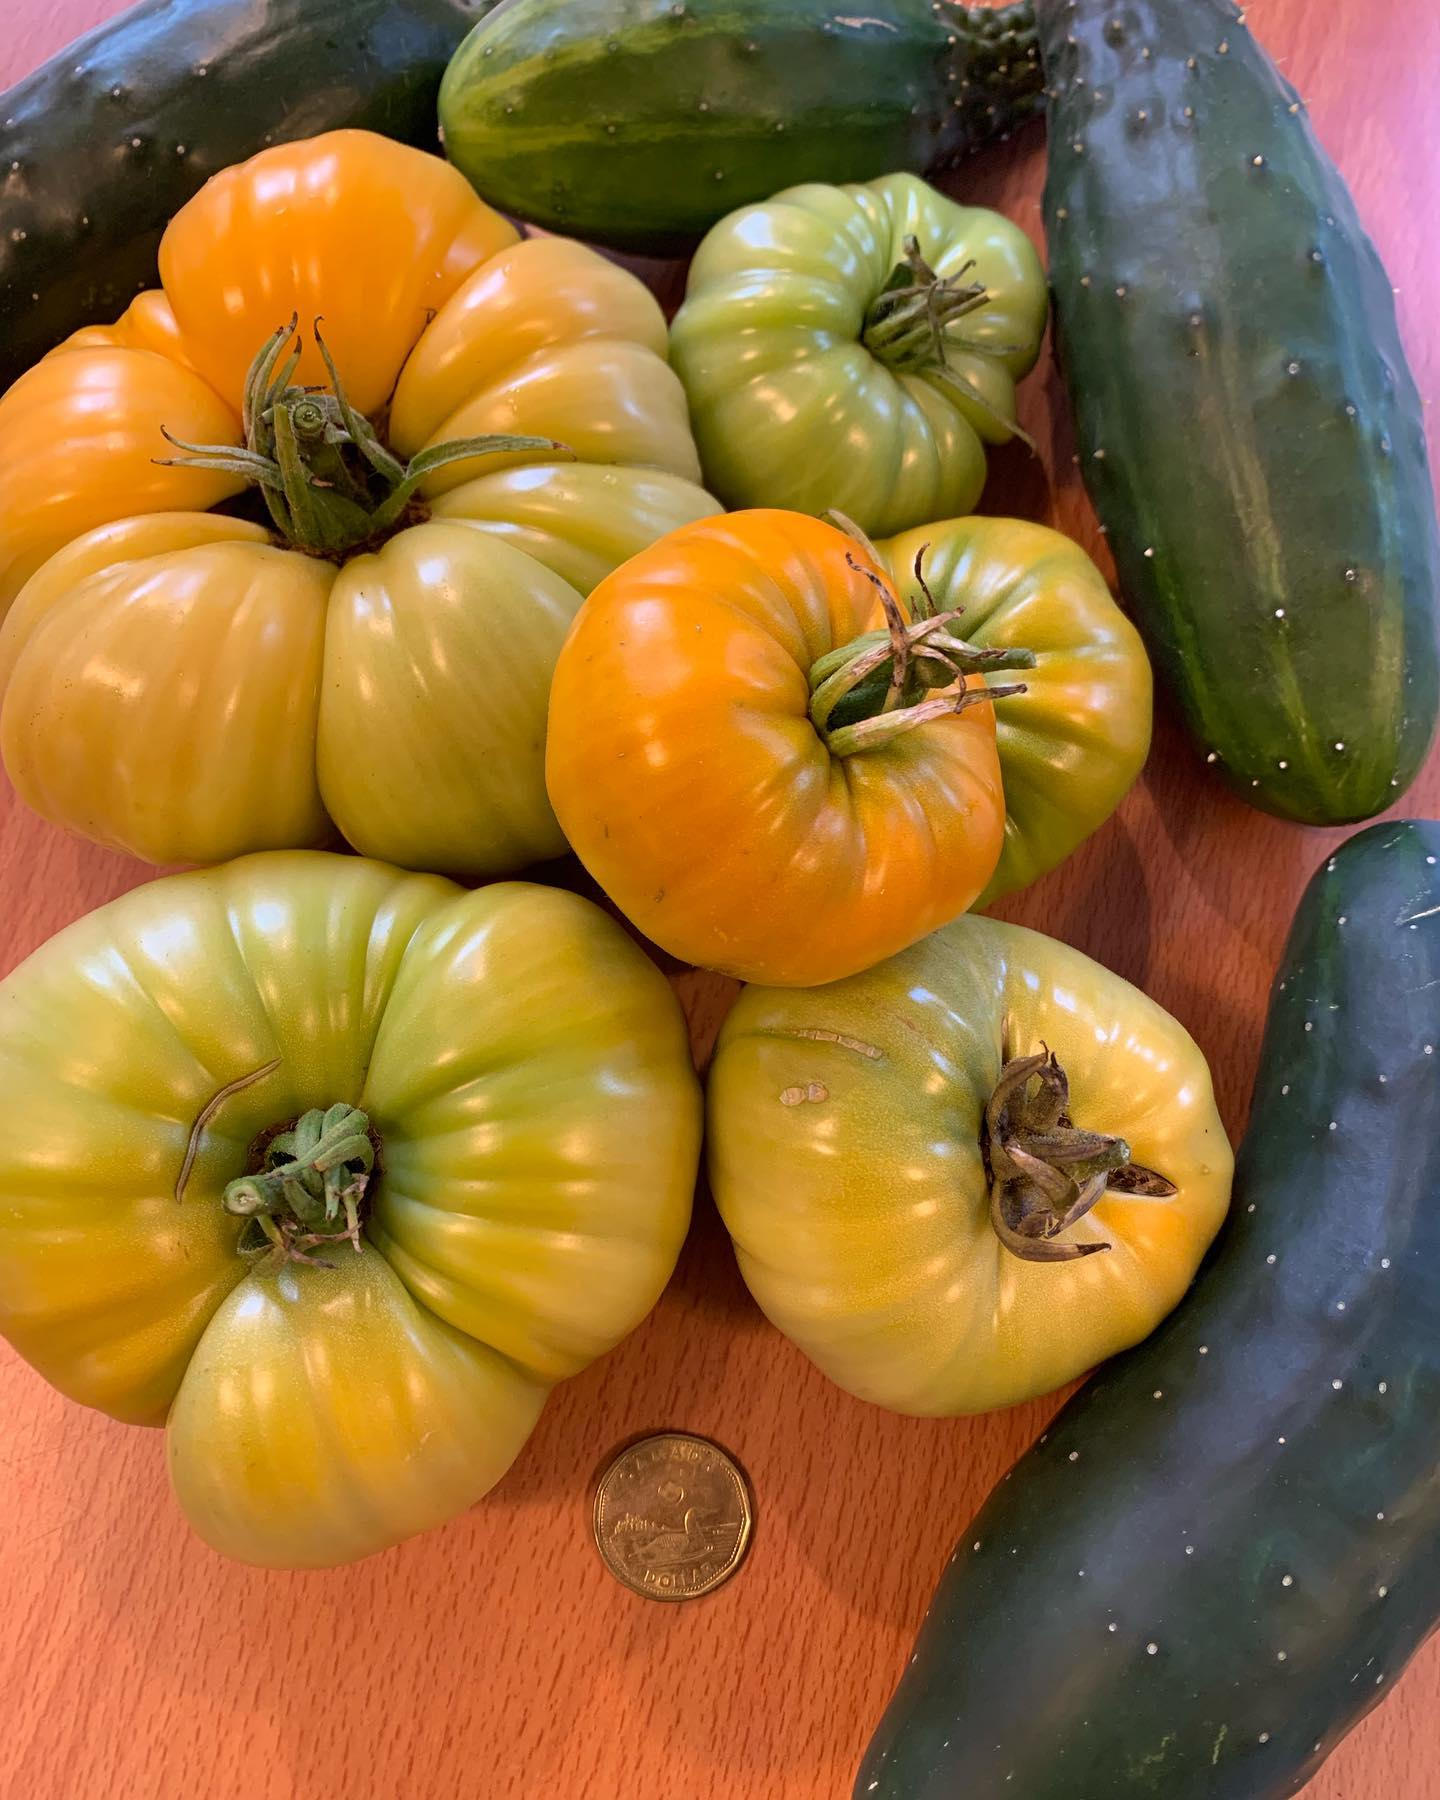 Tomatoes and cucumbers harvested today. Loonie for scale. #harvest #garden #wegrewthis #loonieforscale